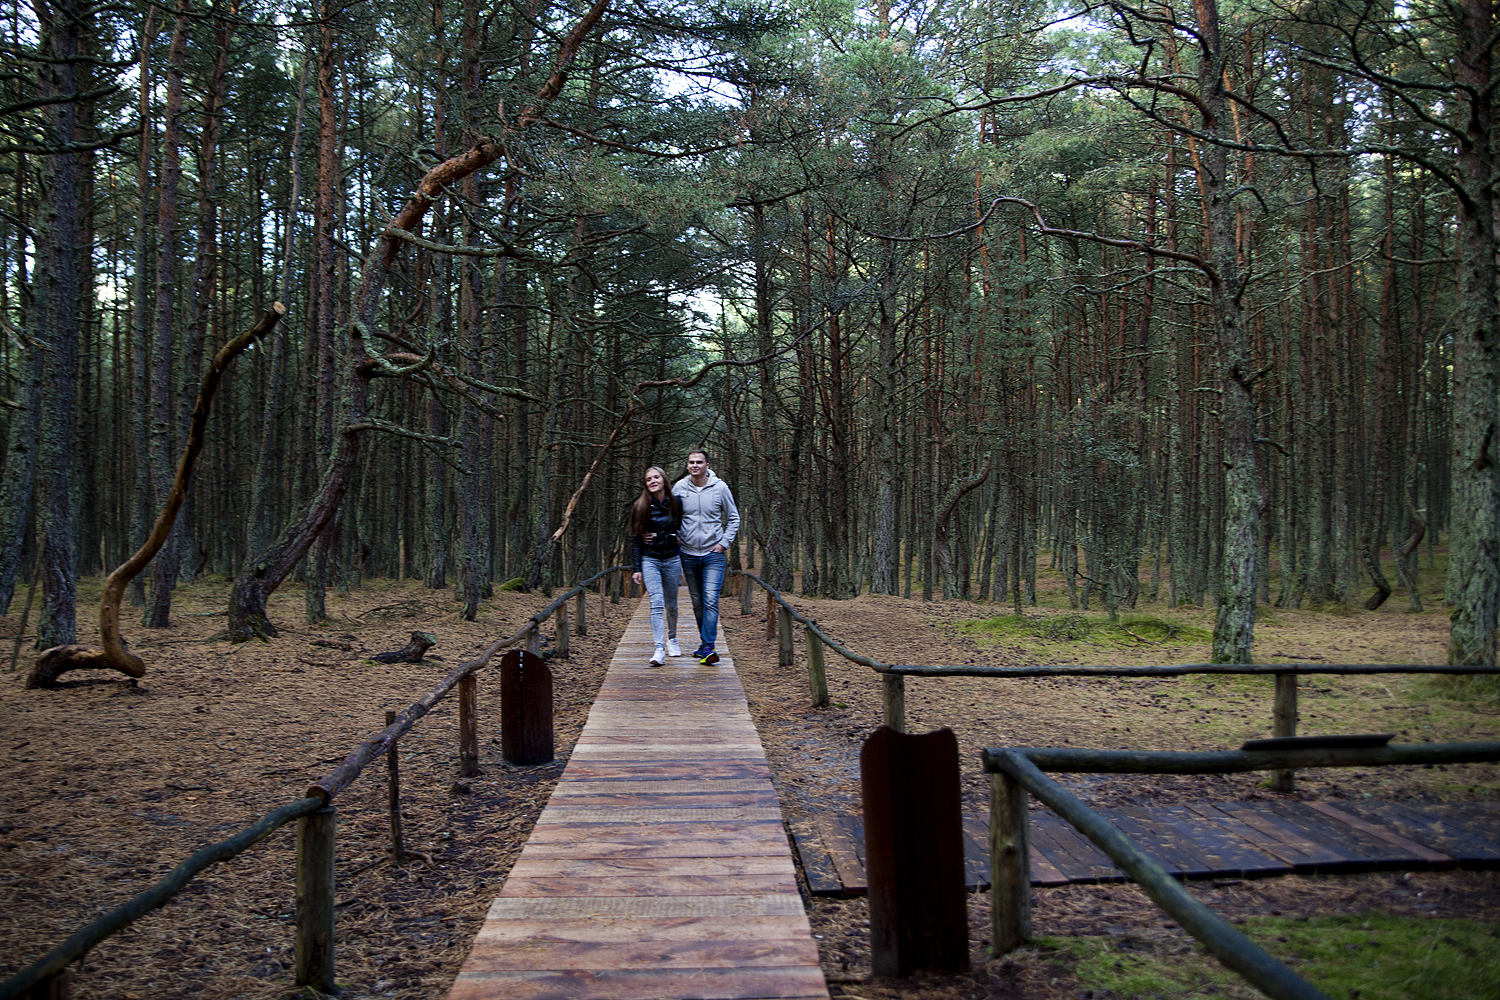 There are routes through the forest: the main one is built like a boardwalk. Leaving the trails is not recommended as the forest abounds in ticks (tourist paths are treated with a special tick-repellent solution).